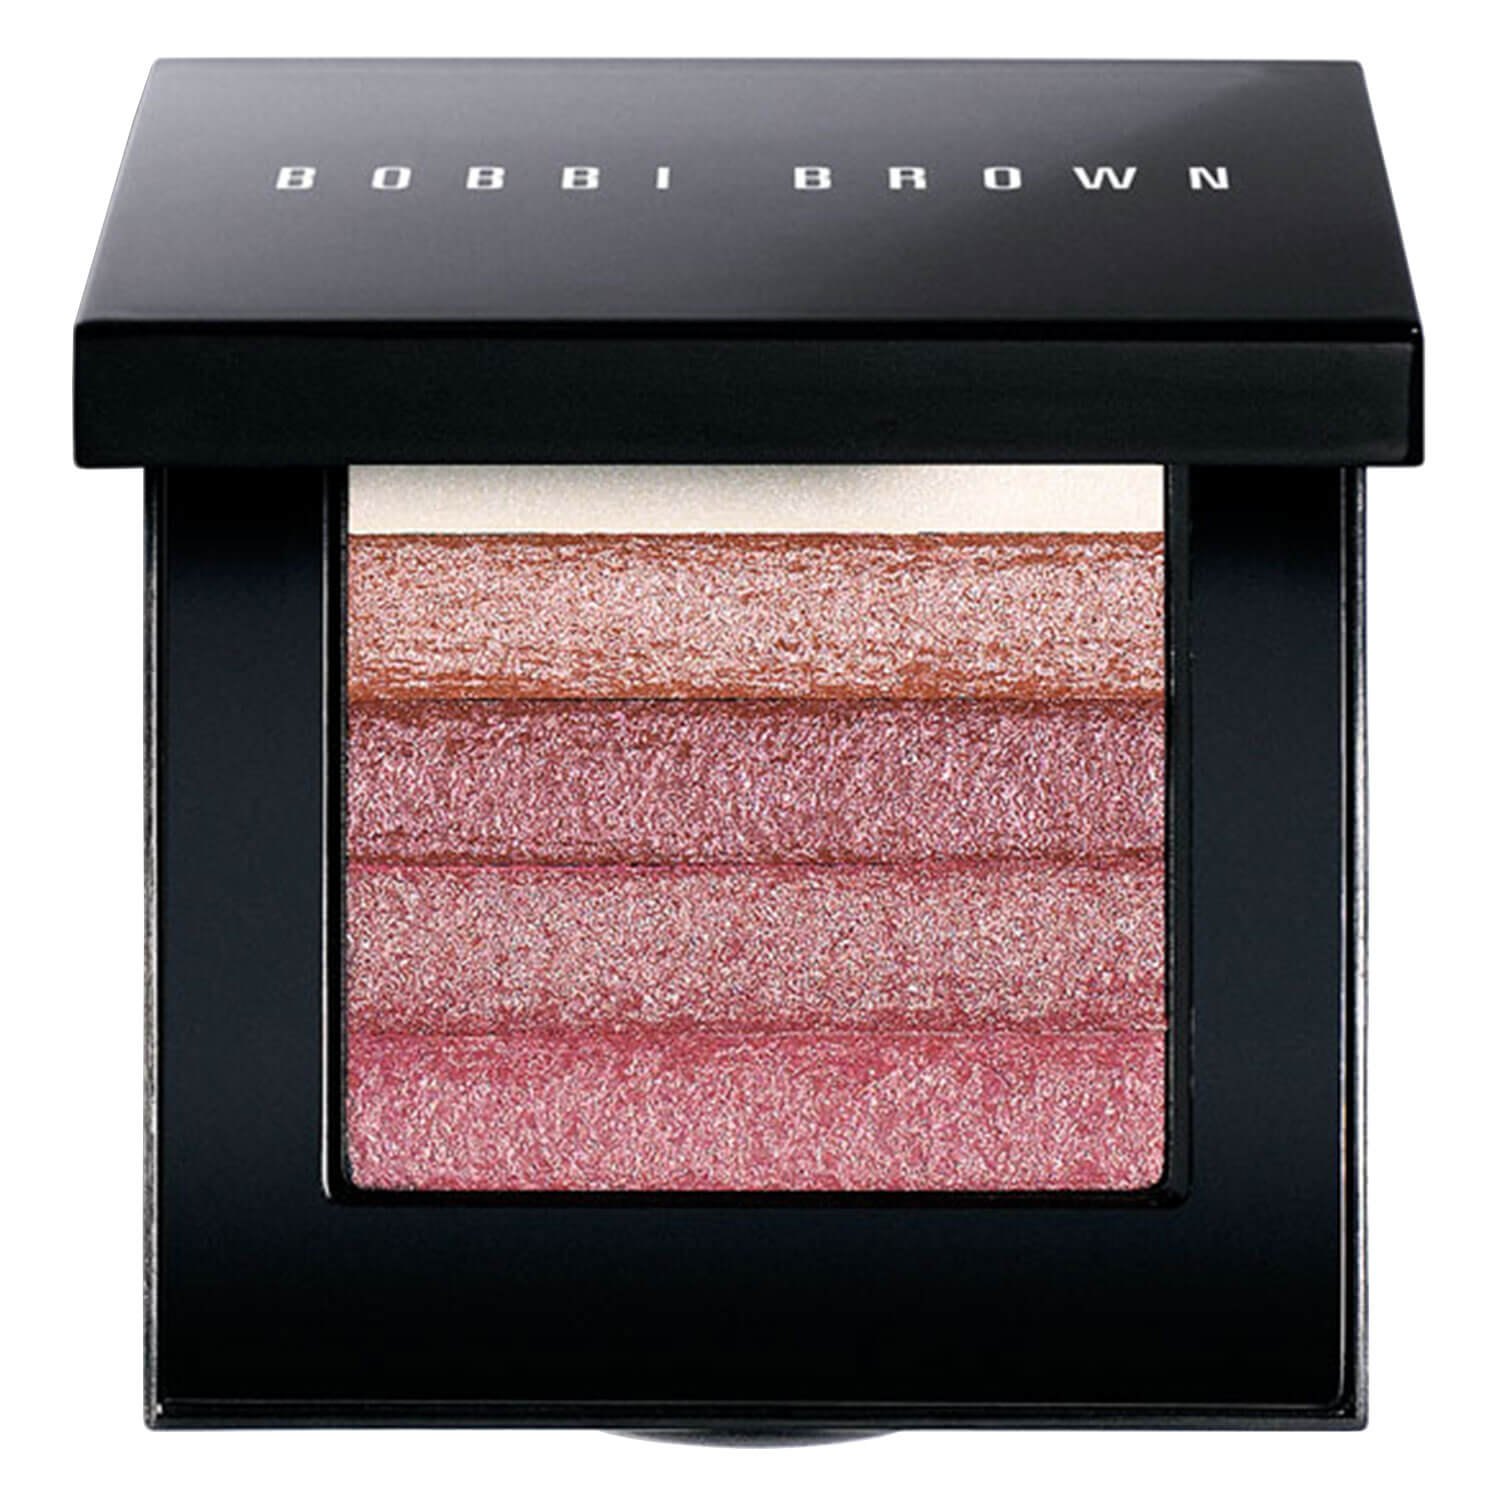 BB Highlight & Glow - Shimmerbrick Rose